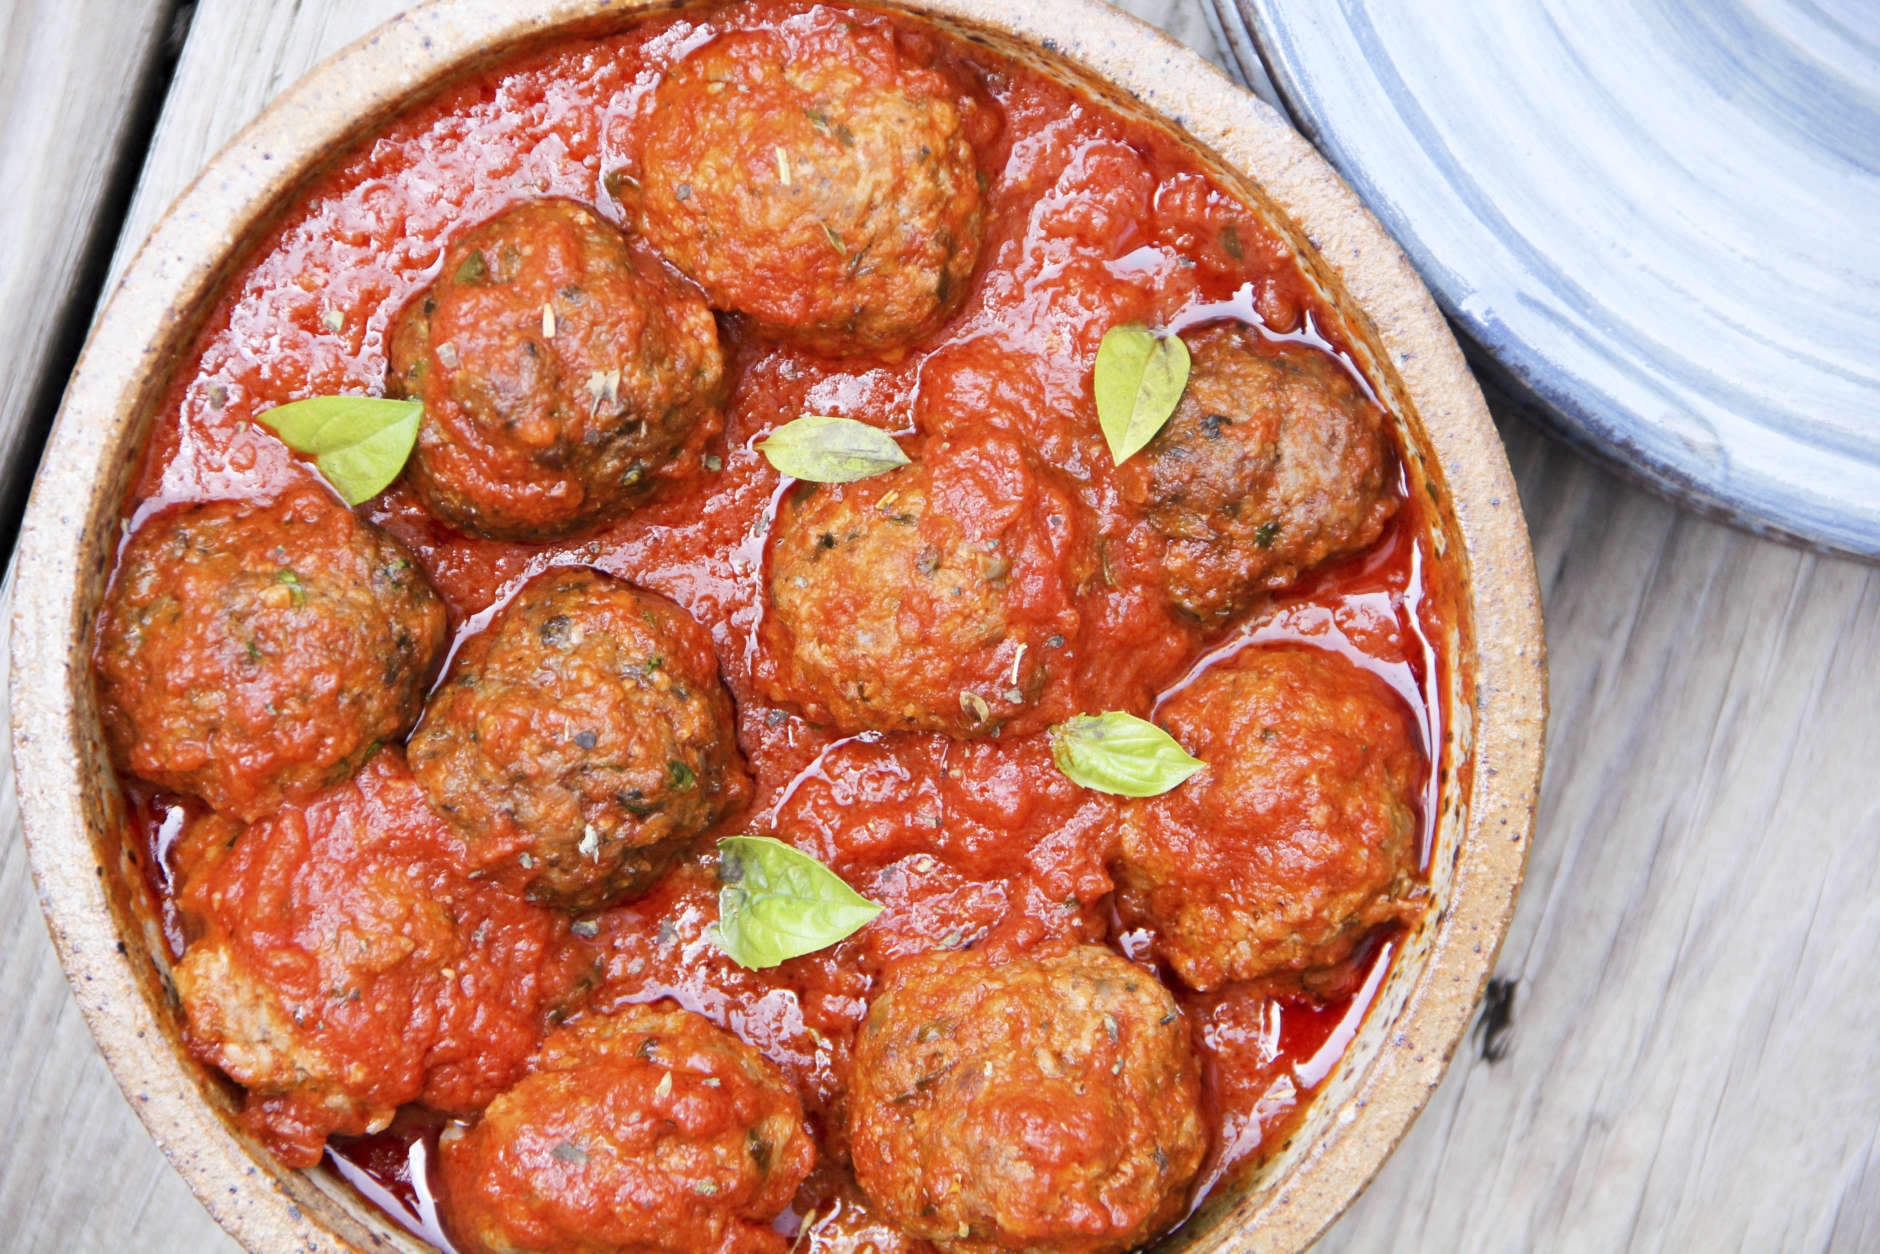 This Sept. 5, 2017 photo shows lightened Italian meatballs in Bethesda, Md. This dish is from a recipe by Melissa d'Arabian. (Melissa d'Arabian via AP)